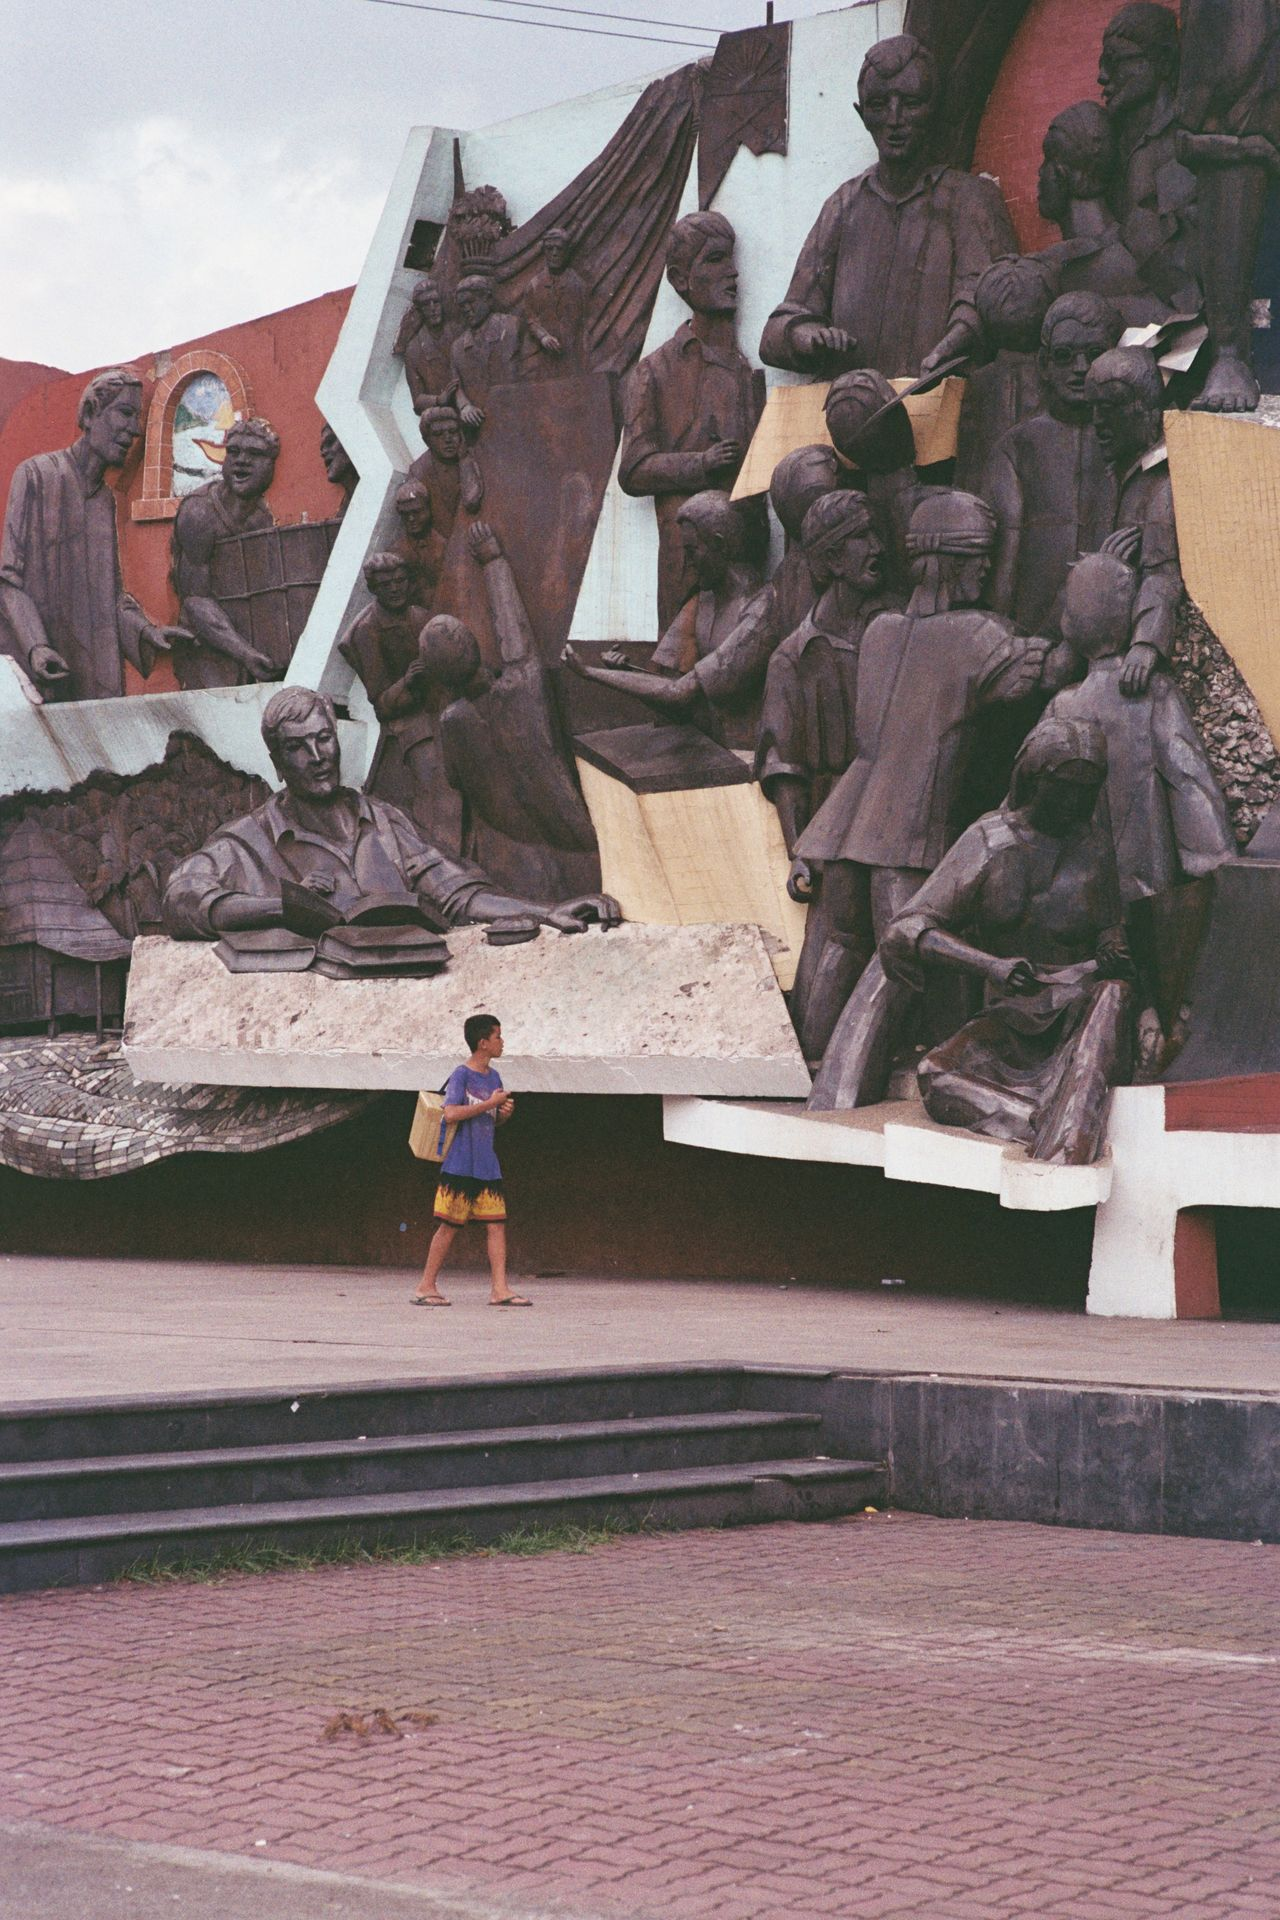 stuck in his story. Kartilya Ng Katipunan Shrine Manila Philippines Architecture Film Photography 35mm Film Film Phoptography Photowalk Olympus OM1 Olympus Om1 Unfiltered Unedited Shrine Monument